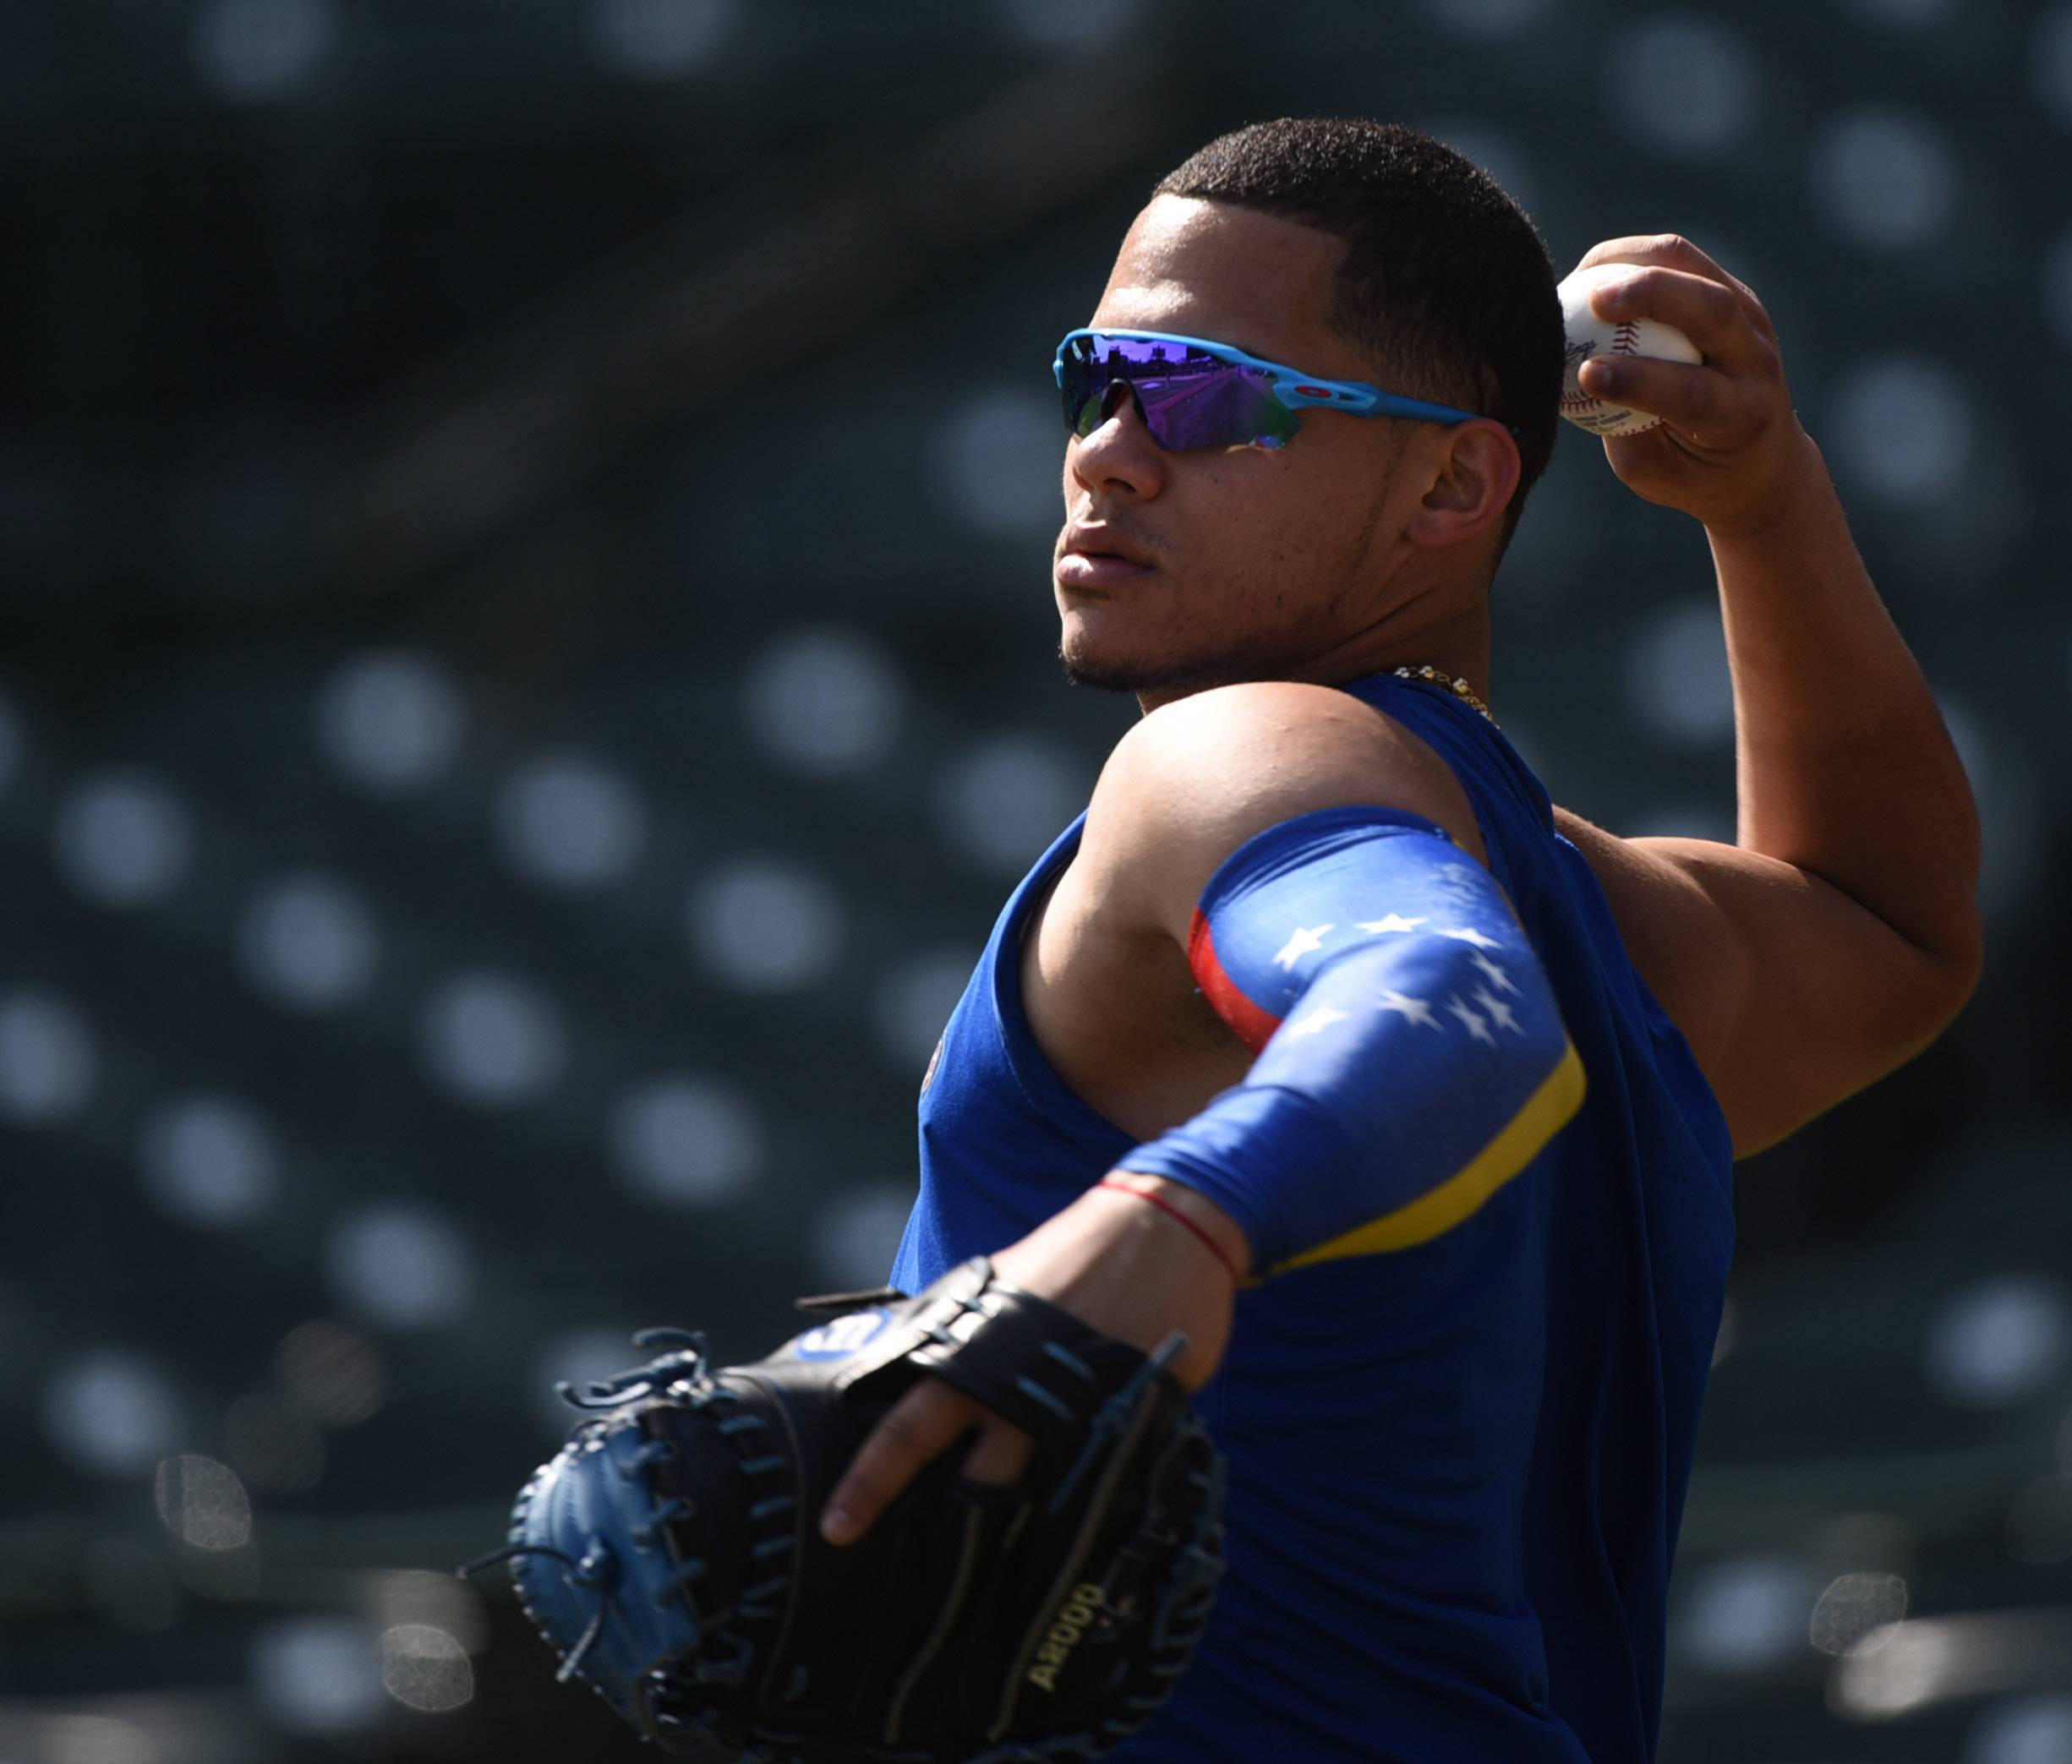 Chicago Cubs' Contreras back, but not yet full time